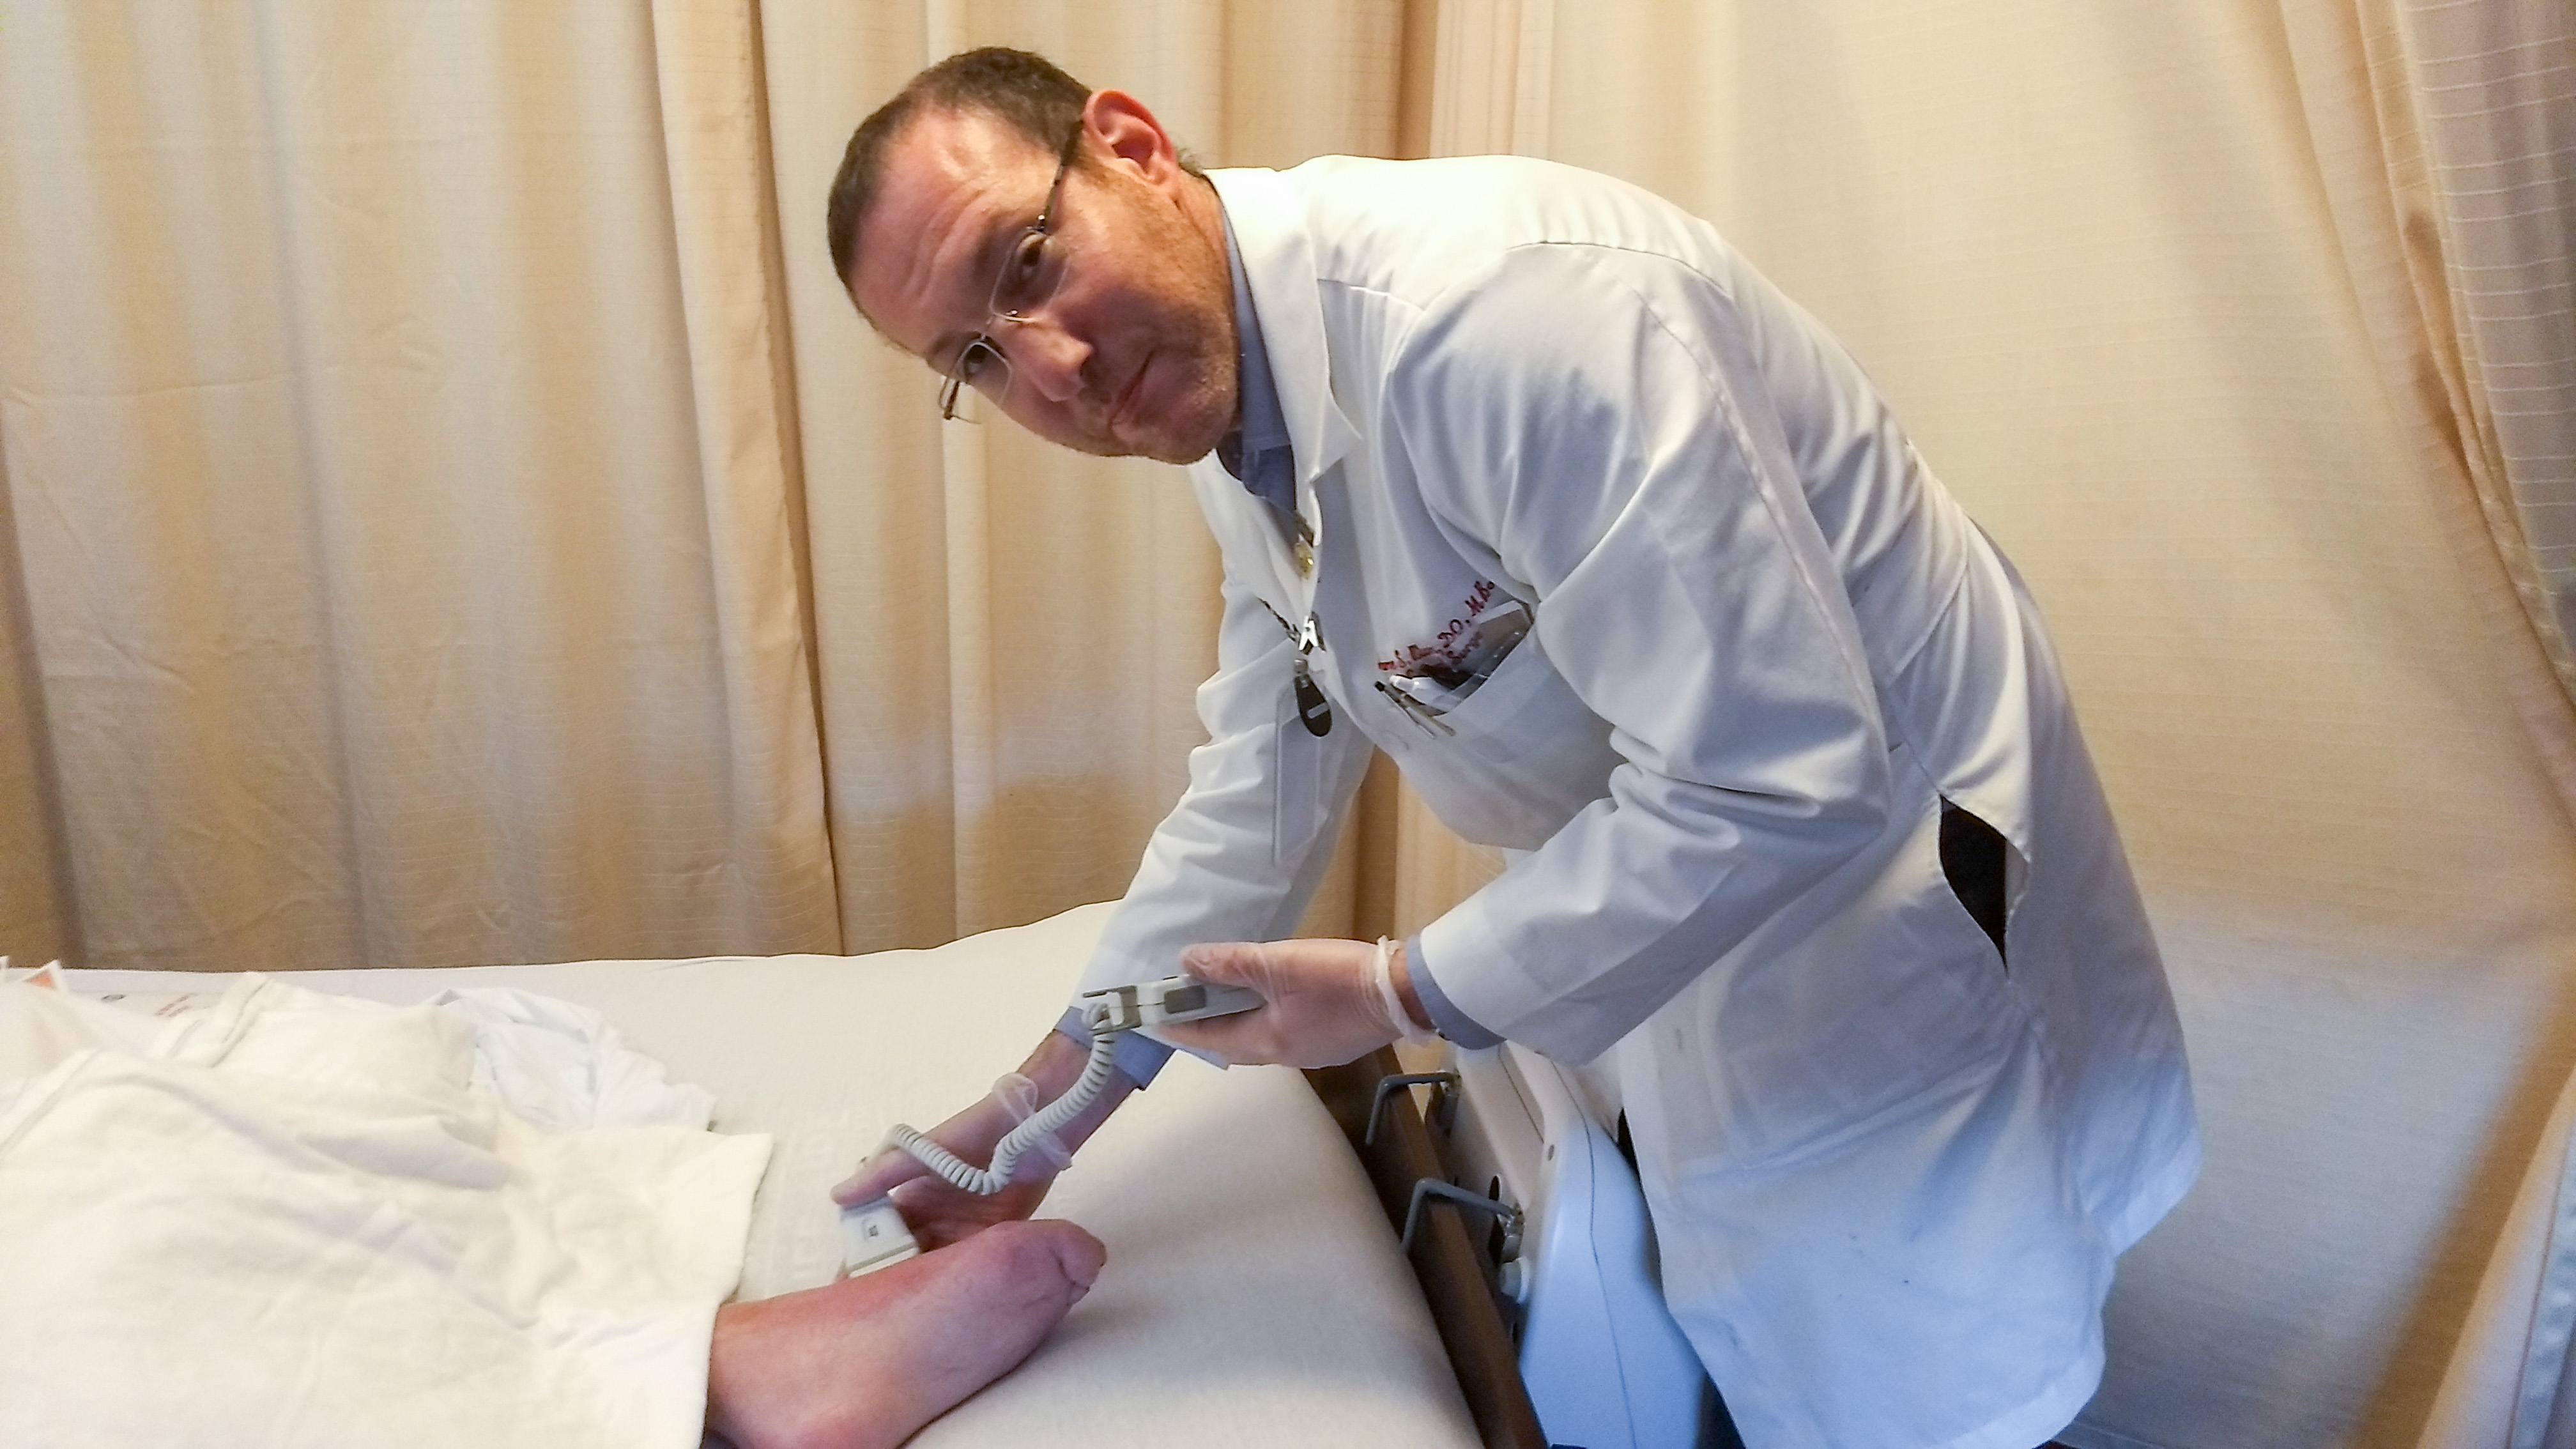 Wound care doctor treating a patient